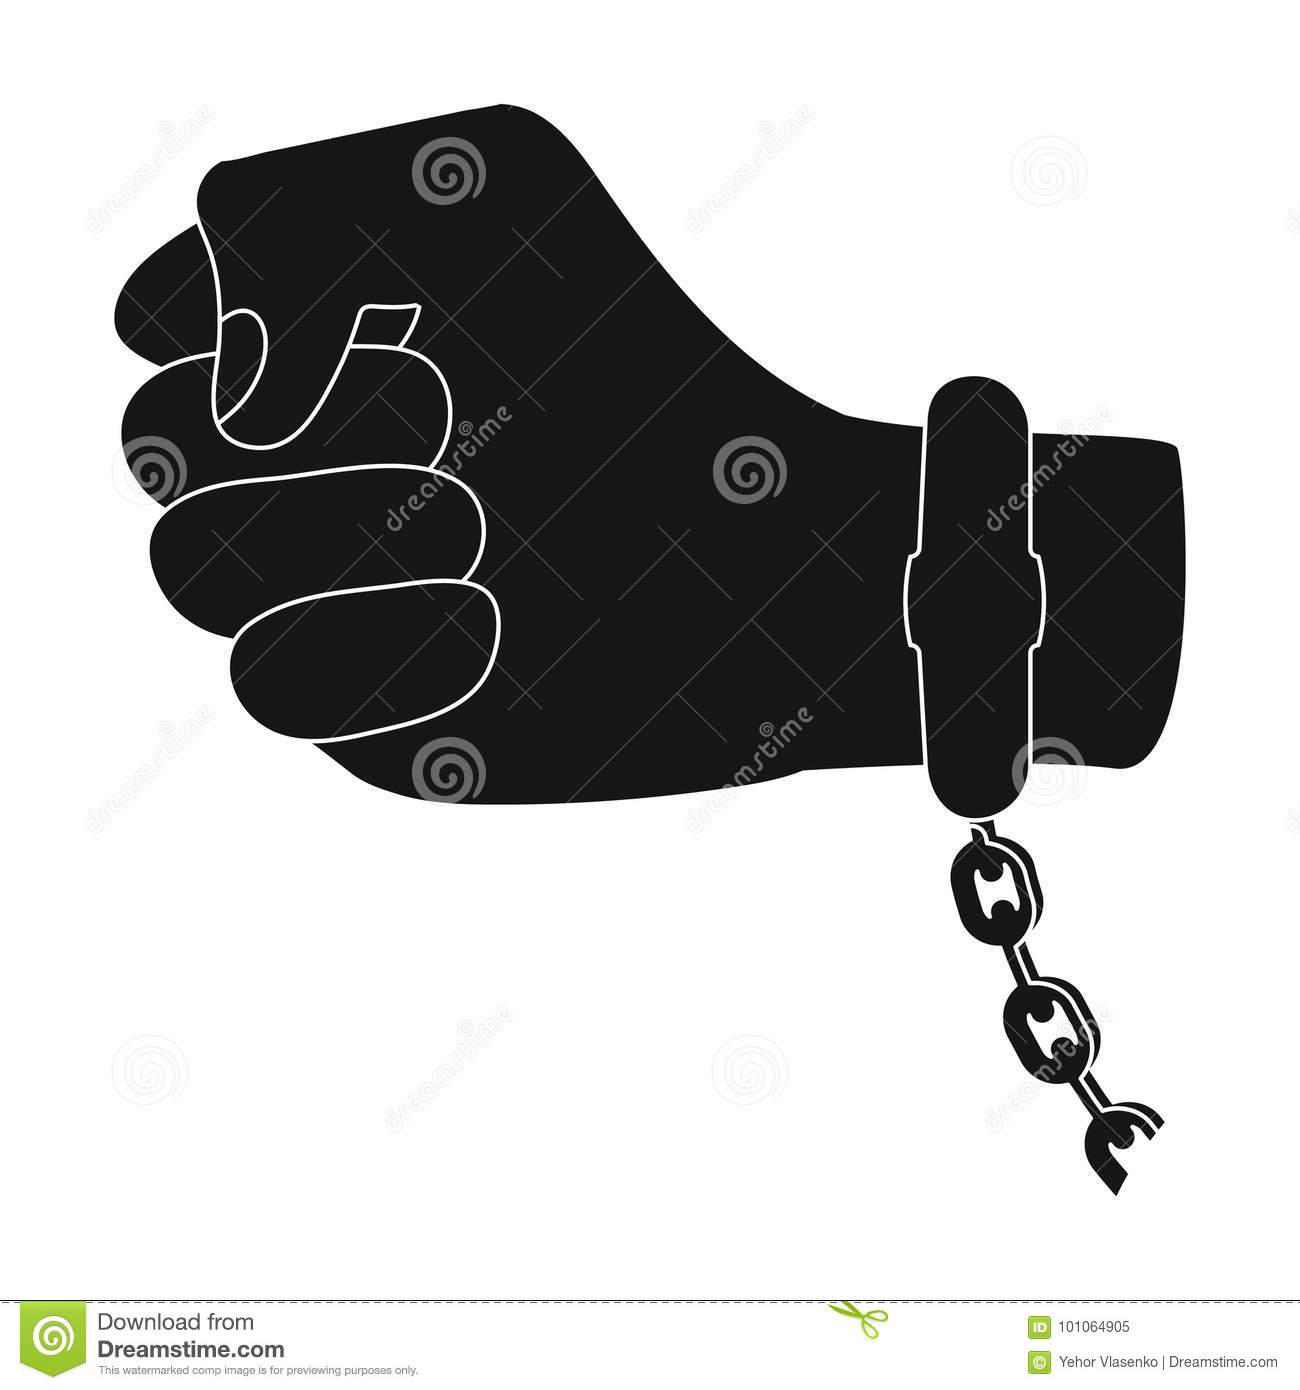 Handcuff On The Hand Of The Criminal Crime And Arrest Single Icon